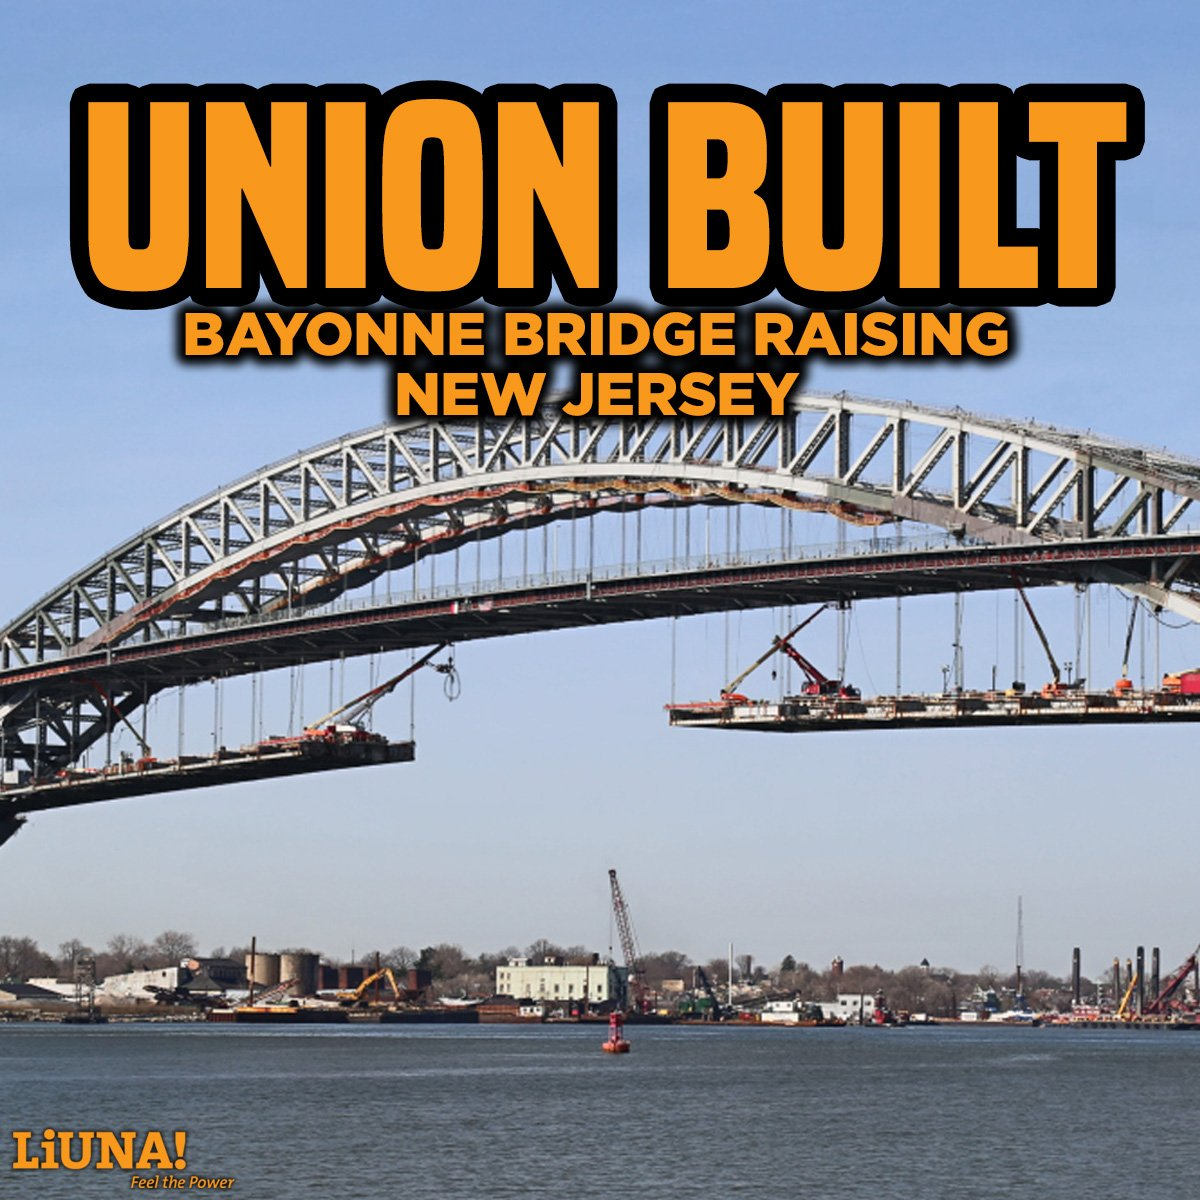 Union built. Union strong. Union proud. #LIUNA #UnionMade #FeelThePower